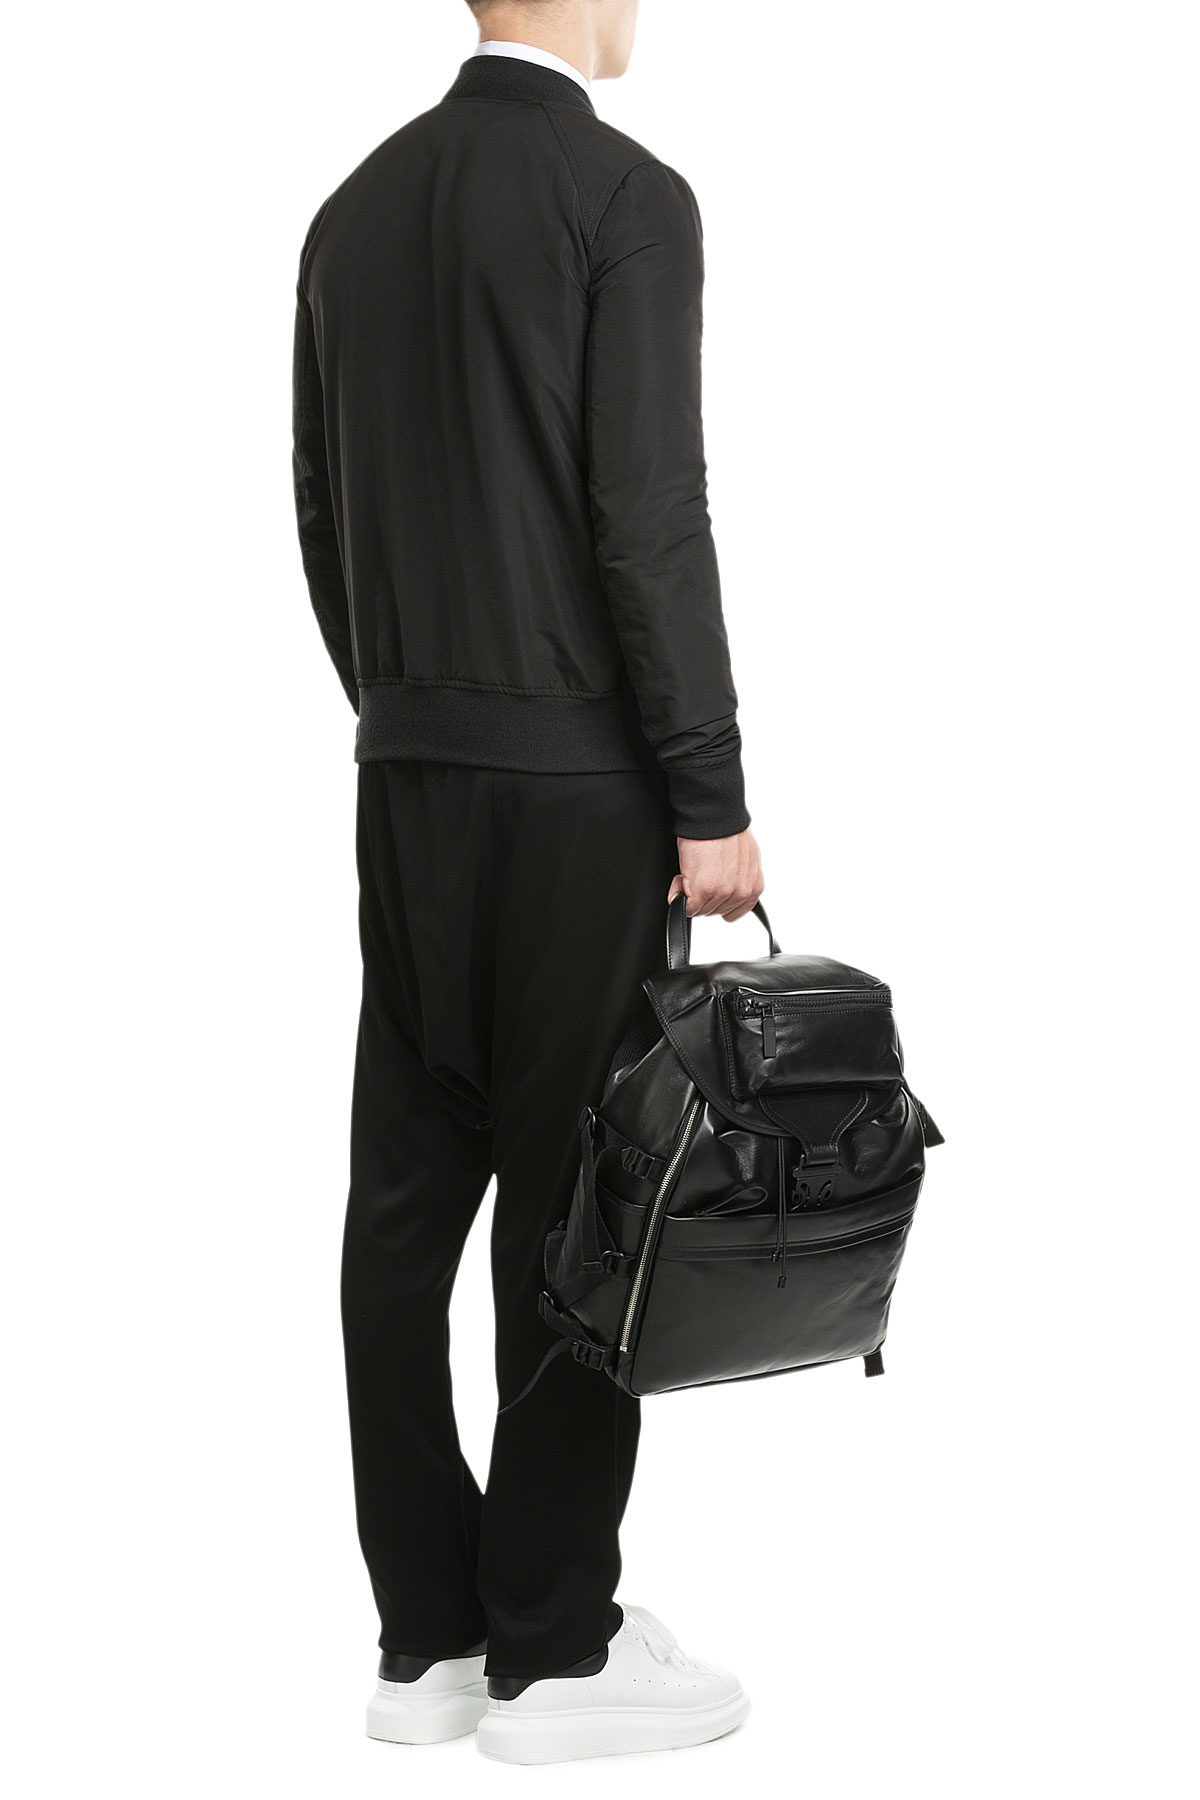 rick owens harem pants black in black for men lyst